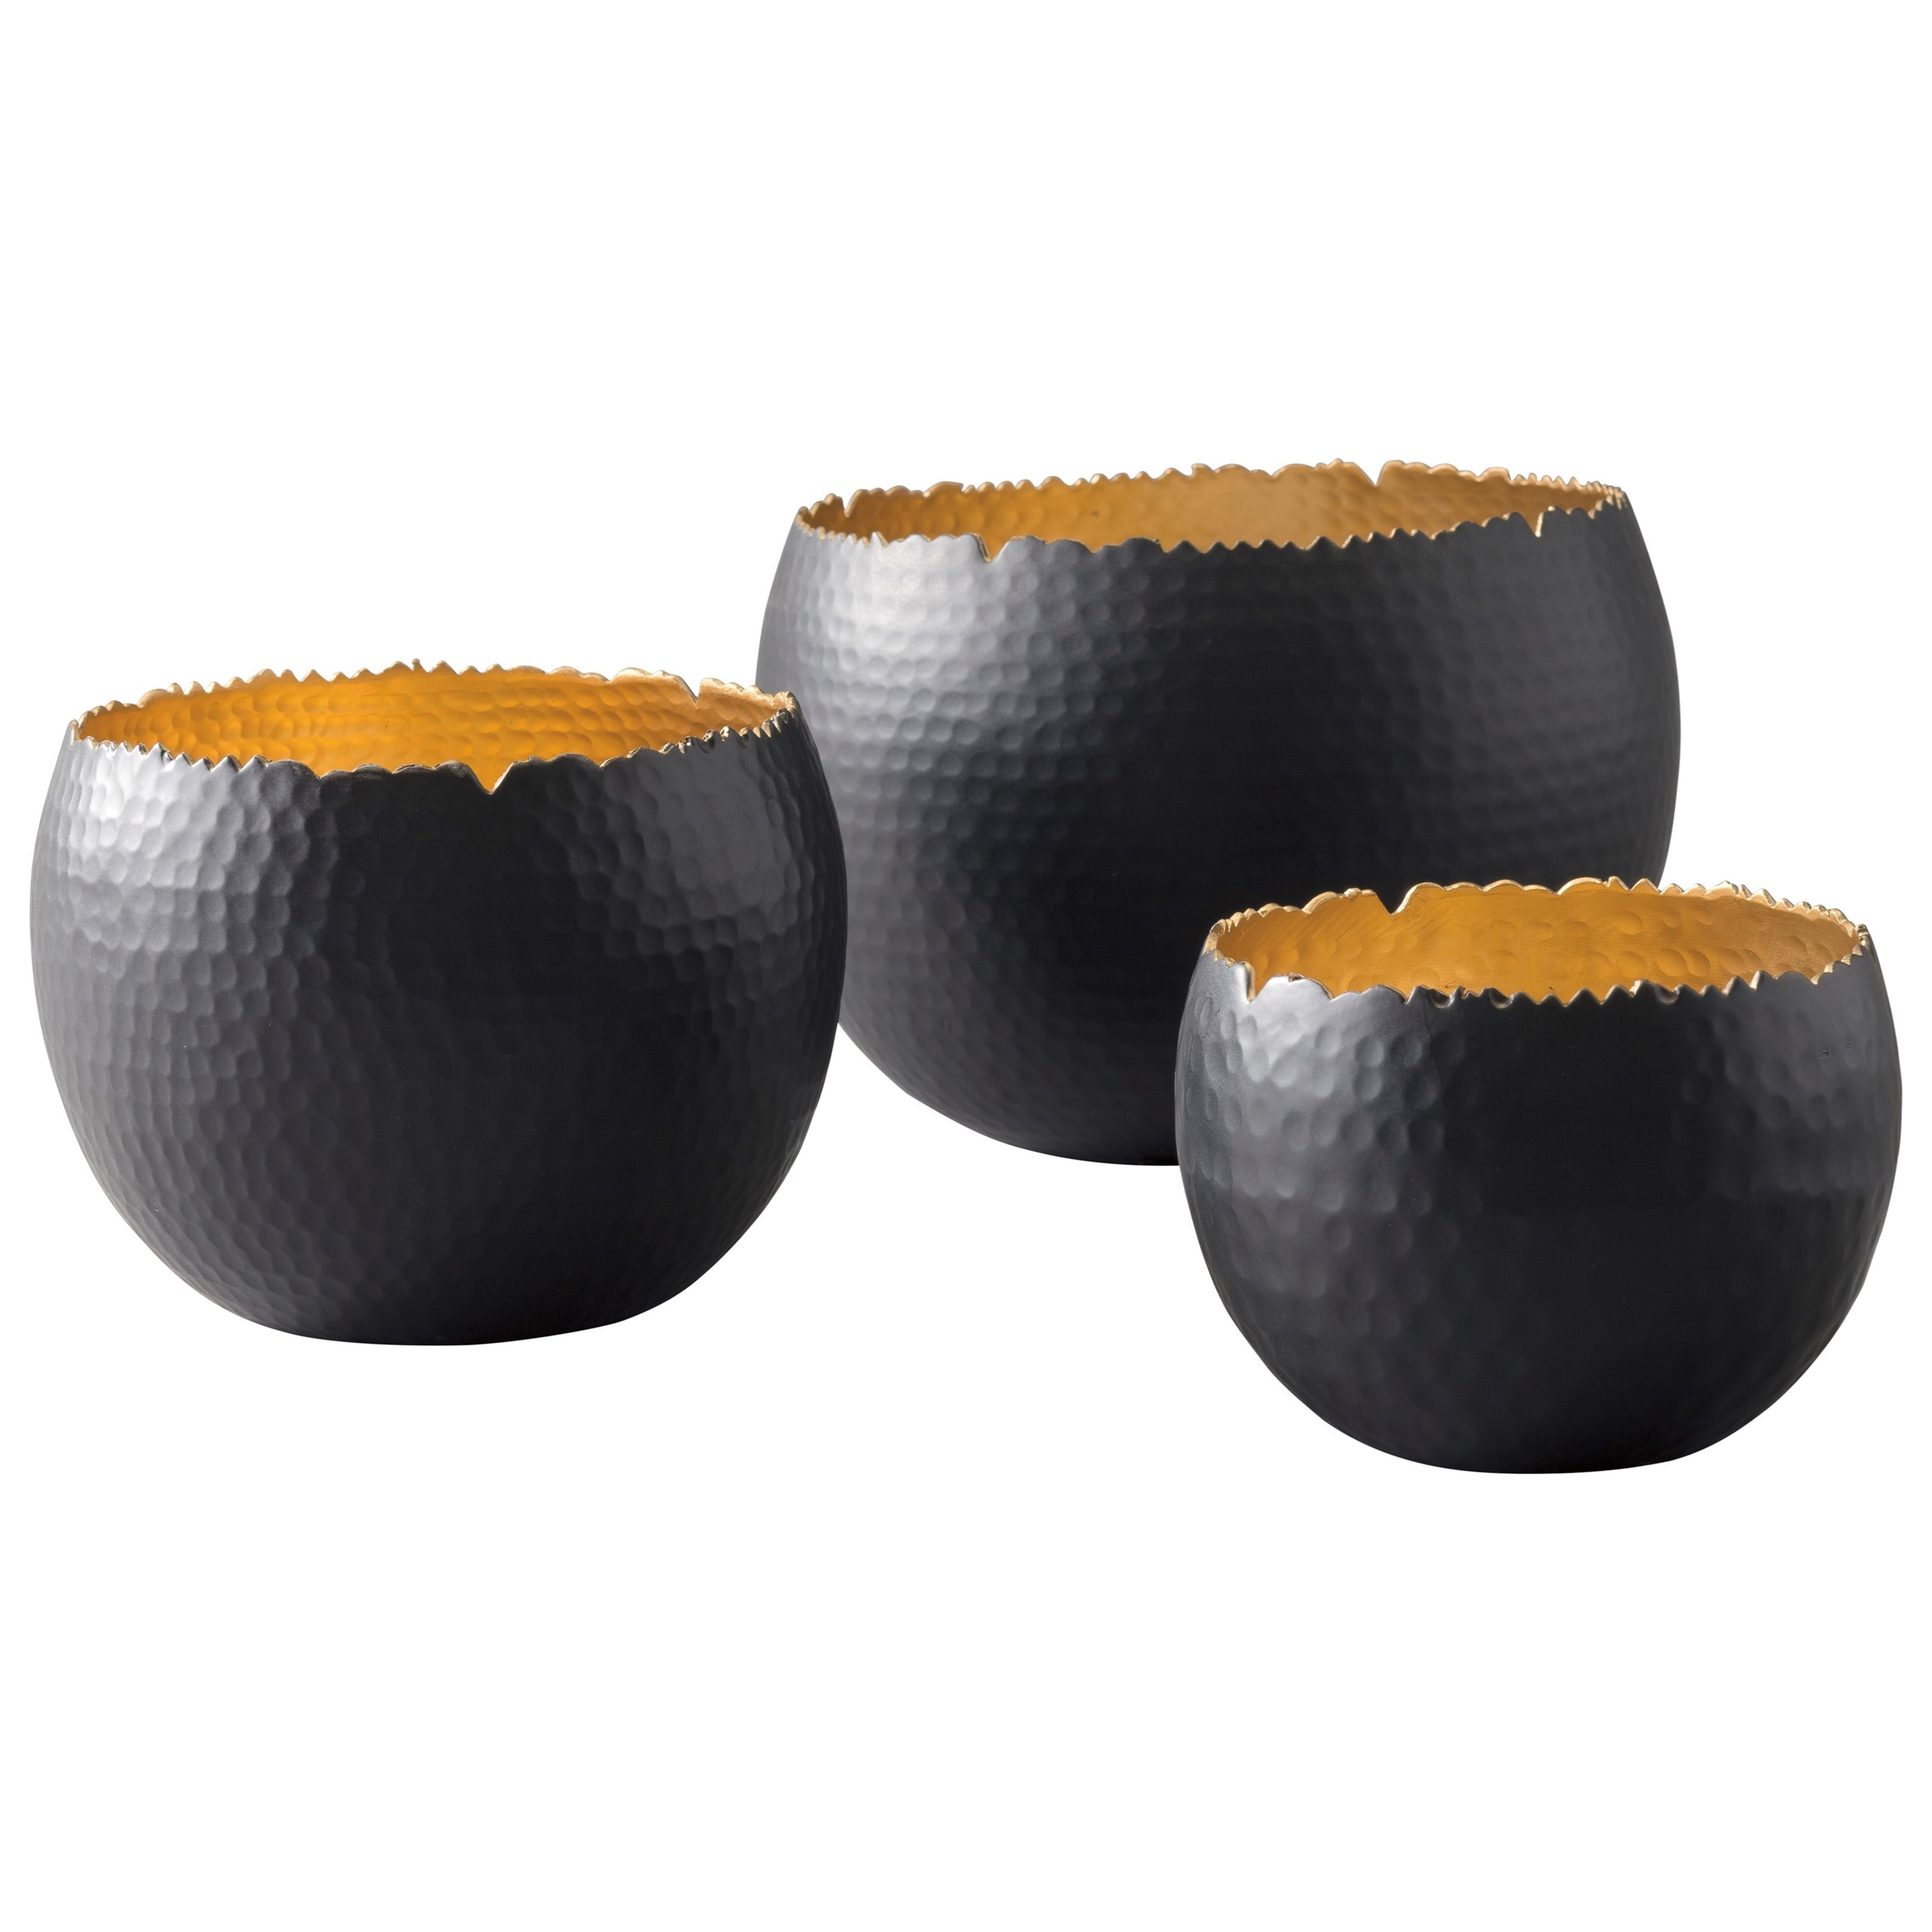 Accents Claudine Black/Gold Finish Bowls, Set of 3 at Ruby Gordon Home